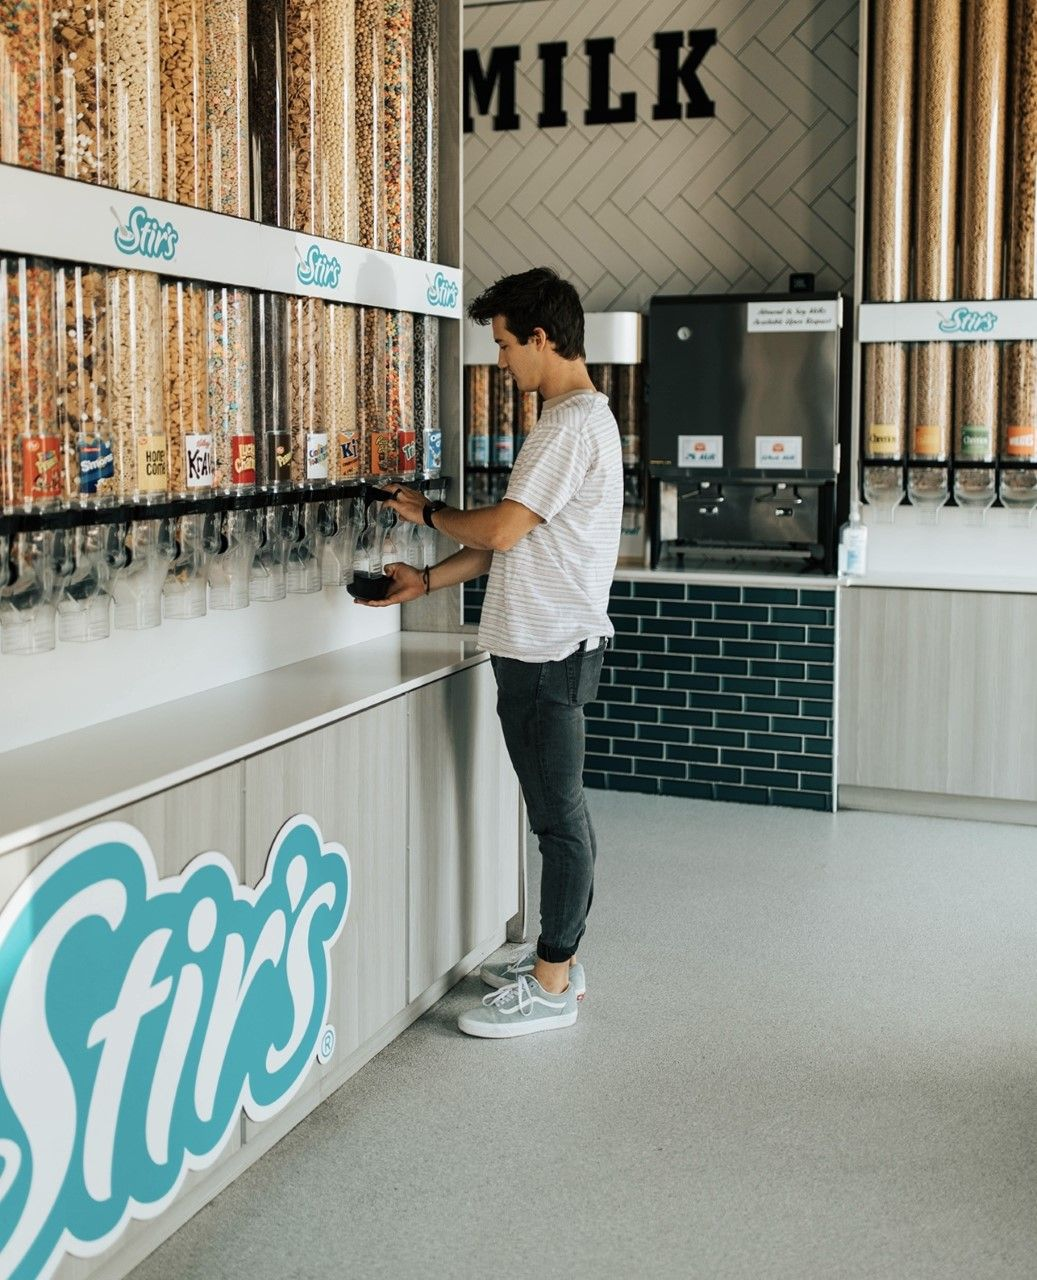 Fast-Growing, Utah-Based Cereal Bar Concept Stir's Announces New Franchise Opportunities